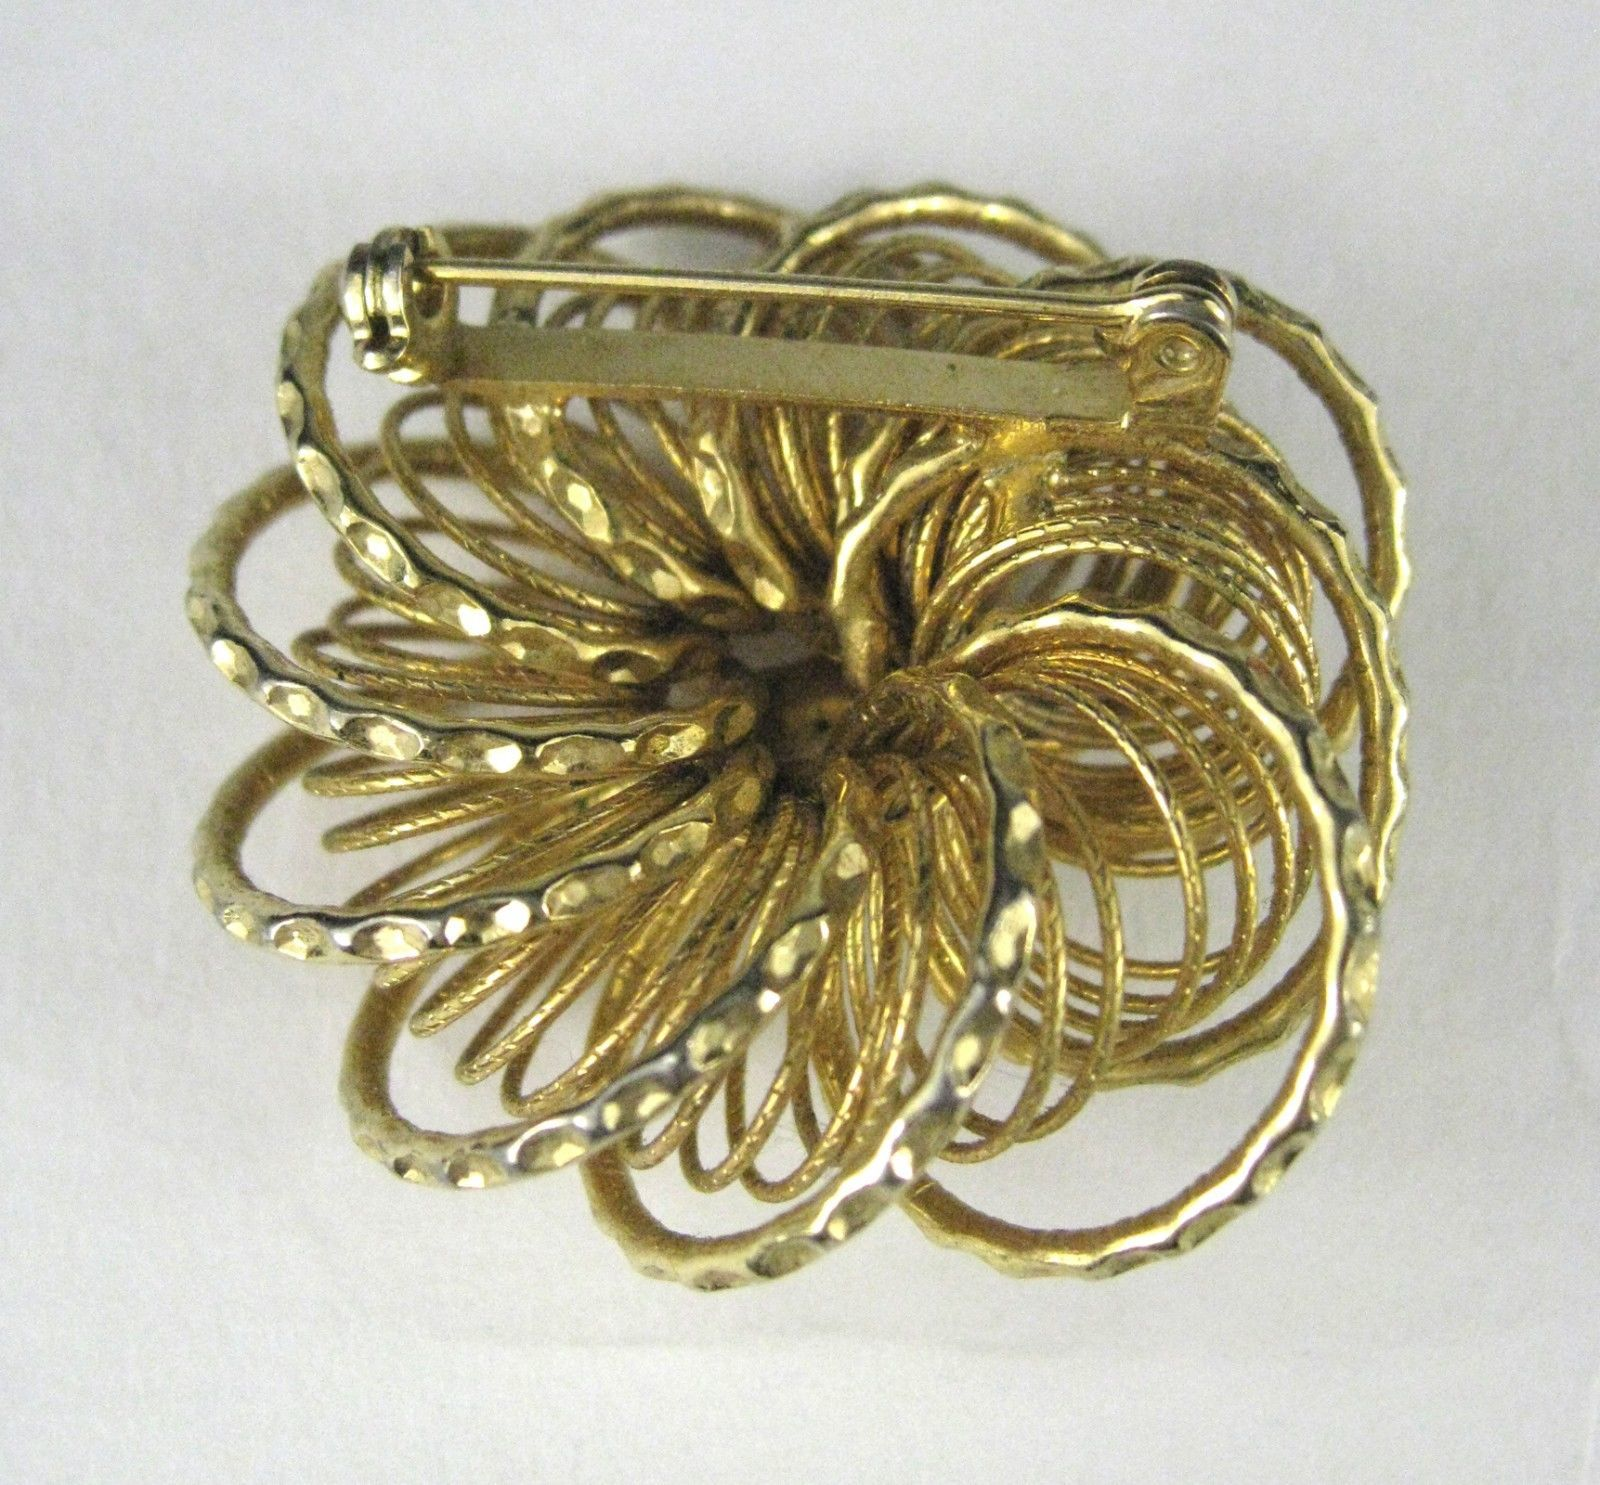 Brooch Gold Tone Real Pearl Sunburst Swirl Size 1.5 Inches Fashion Vintage 1960?